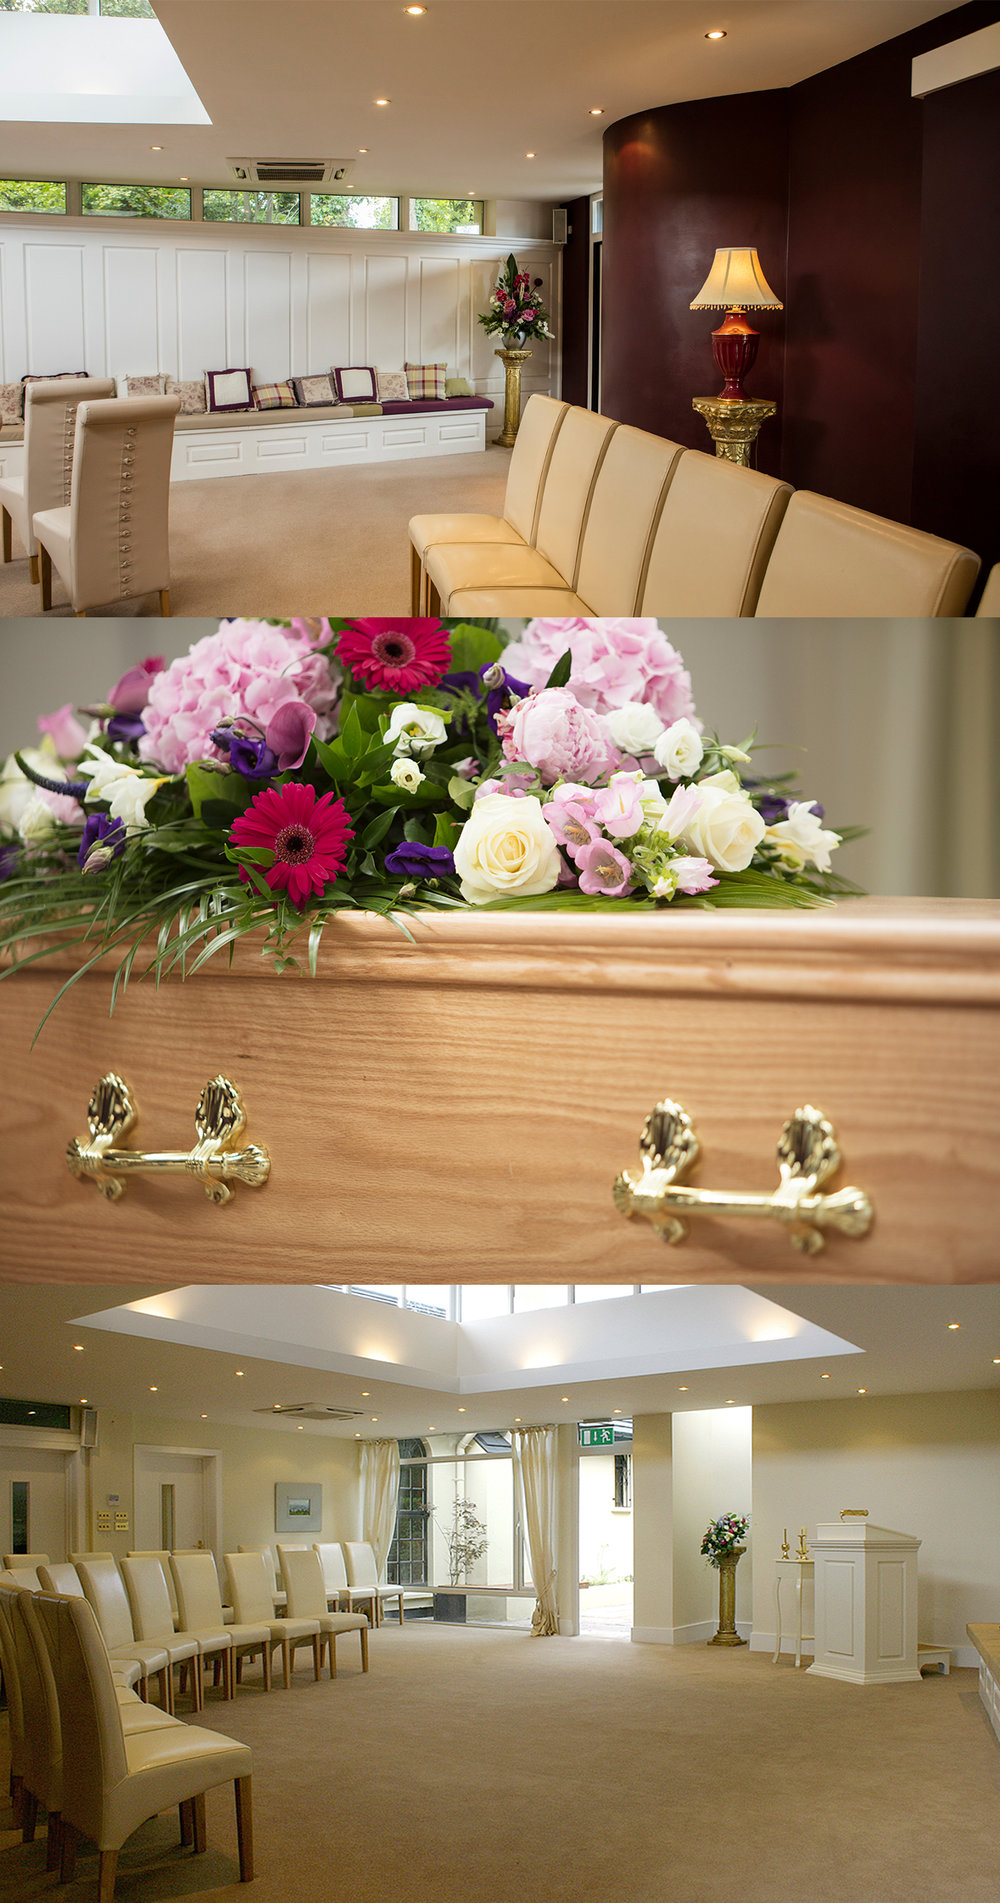 "Funeral Services  - We offer funeral services for all faiths and philosophies.To reflect our changing culture, Colliers offers secular andnon-denominational funeral services, in addition to traditional religious services. We understand that planning a funeral can feel overwhelming. Should you have any questions at all, don't hesitate to get in touch and let us know how we can help.Civil FuneralsA civil ceremony offers an alternative for those who wish to have a funeral ceremony in keeping with the wishes of the deceased and their family, rather than a religious or ""traditional"" funeral. Our civil funerals are officiated by expert Celebrants, who will spend whatever length of time is necessary with you and your family to write a tribute that captures the story, the essence and the enduring spirit of the deceased. Music and poetry with special significance, hymns and prayers can help to ensure a memorable service. Ceremonies may be held at our funeral home, a crematorium or another venue chosen by the family, followed by burial or cremation.Humanist FuneralsLike a civil funeral, a humanist funeral is also centred on the wishes of the deceased. A humanist service takes into account that the deceased did not accept or live by religious principles and recognised no after-life. The funeral celebrates the life of the deceased through music, readings of poetry and/or prose, and tributes paid by those they have left behind."